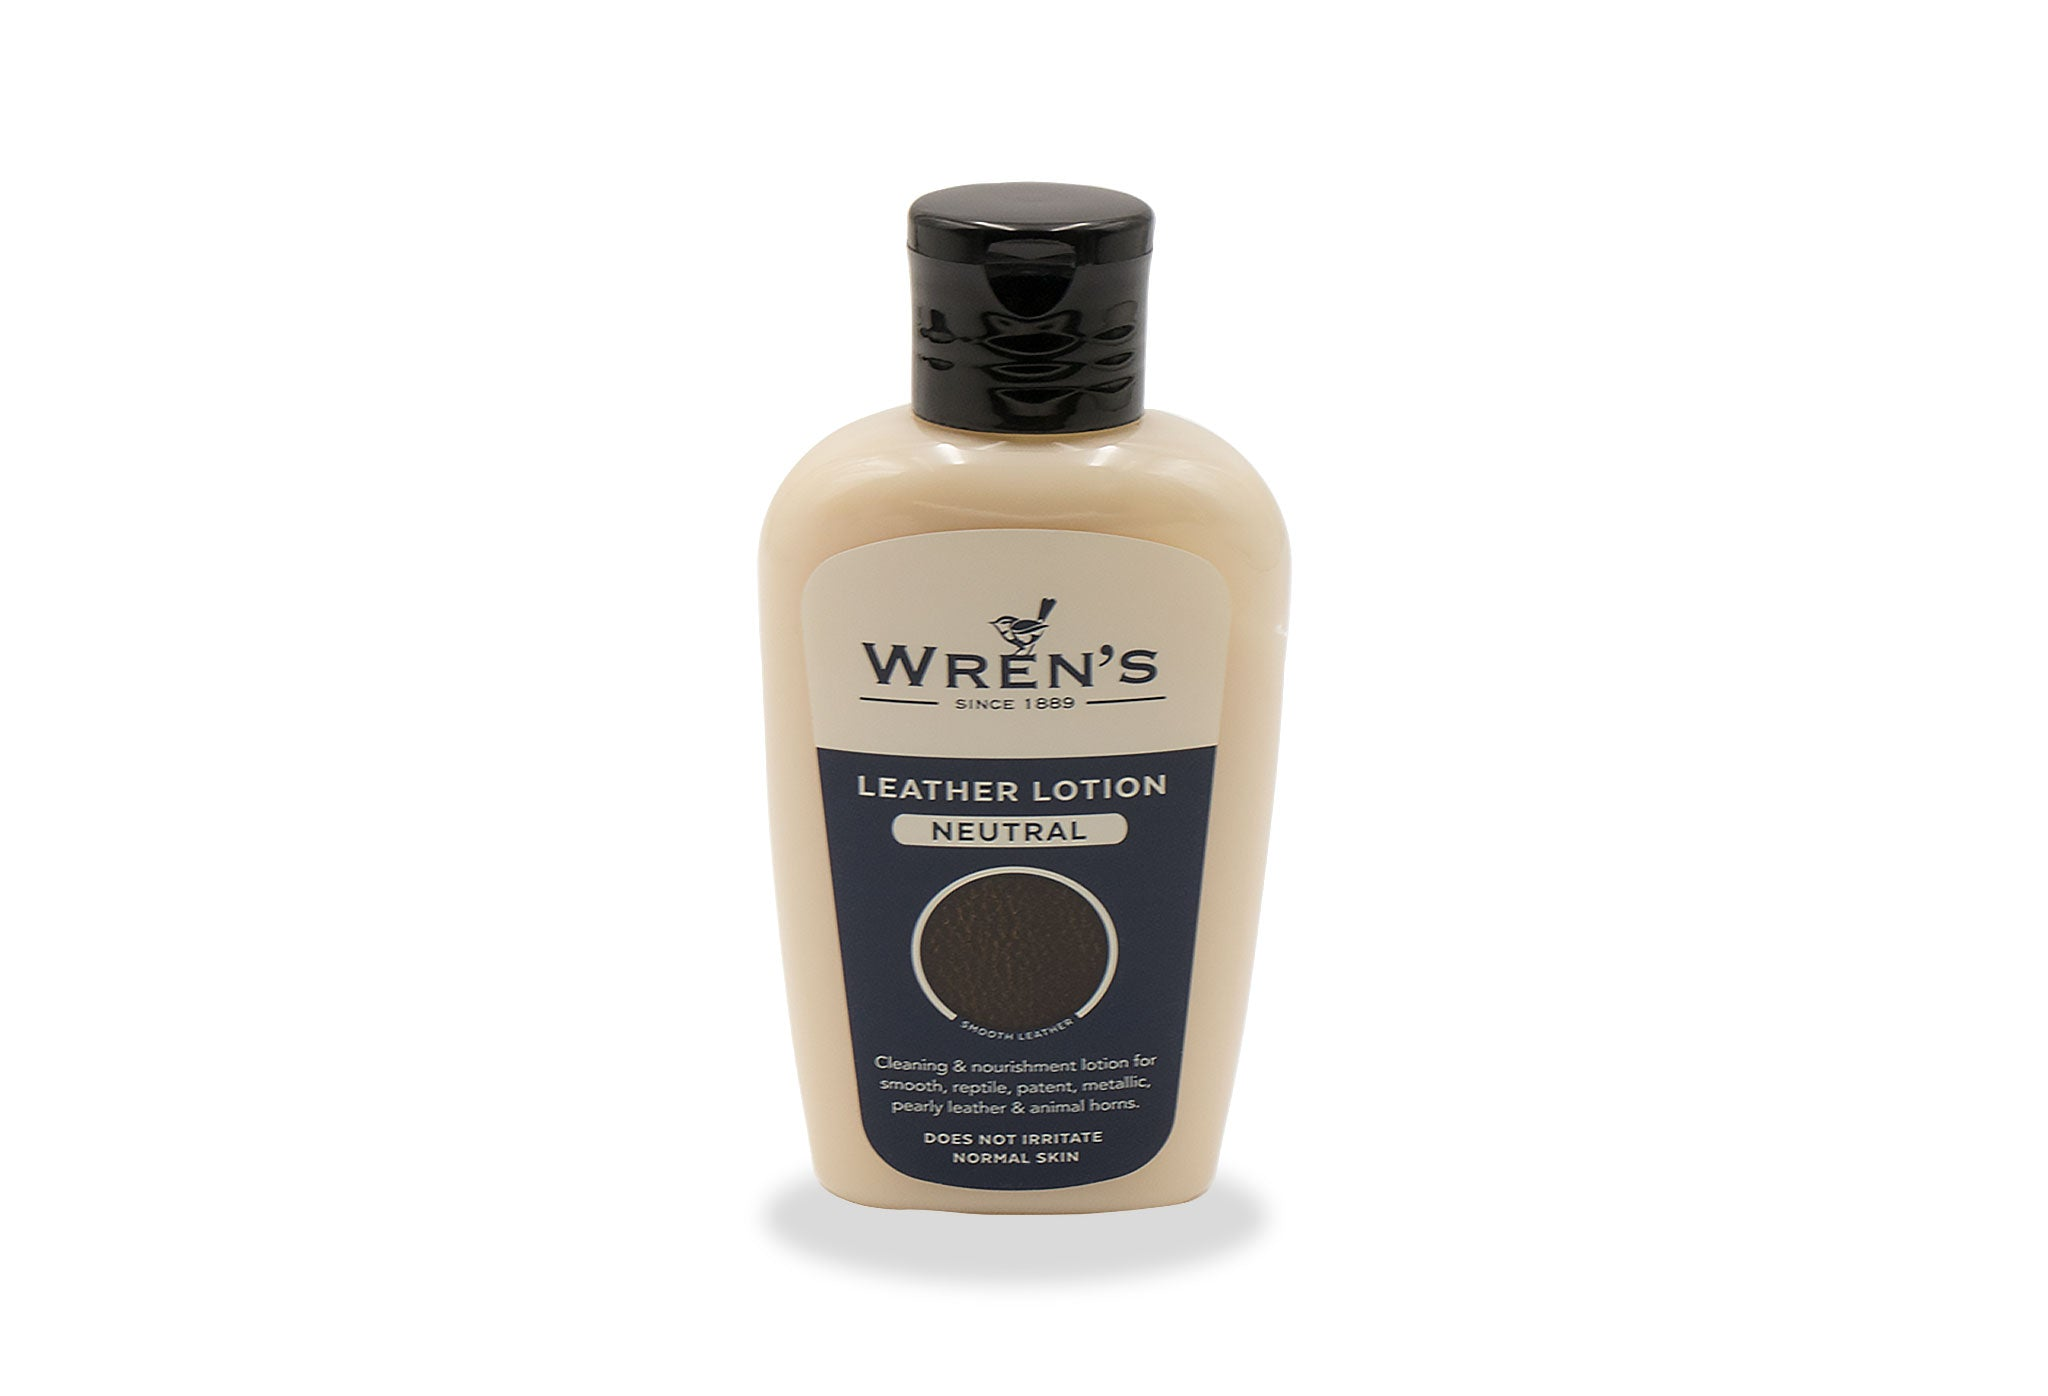 Wren's Leather Lotion